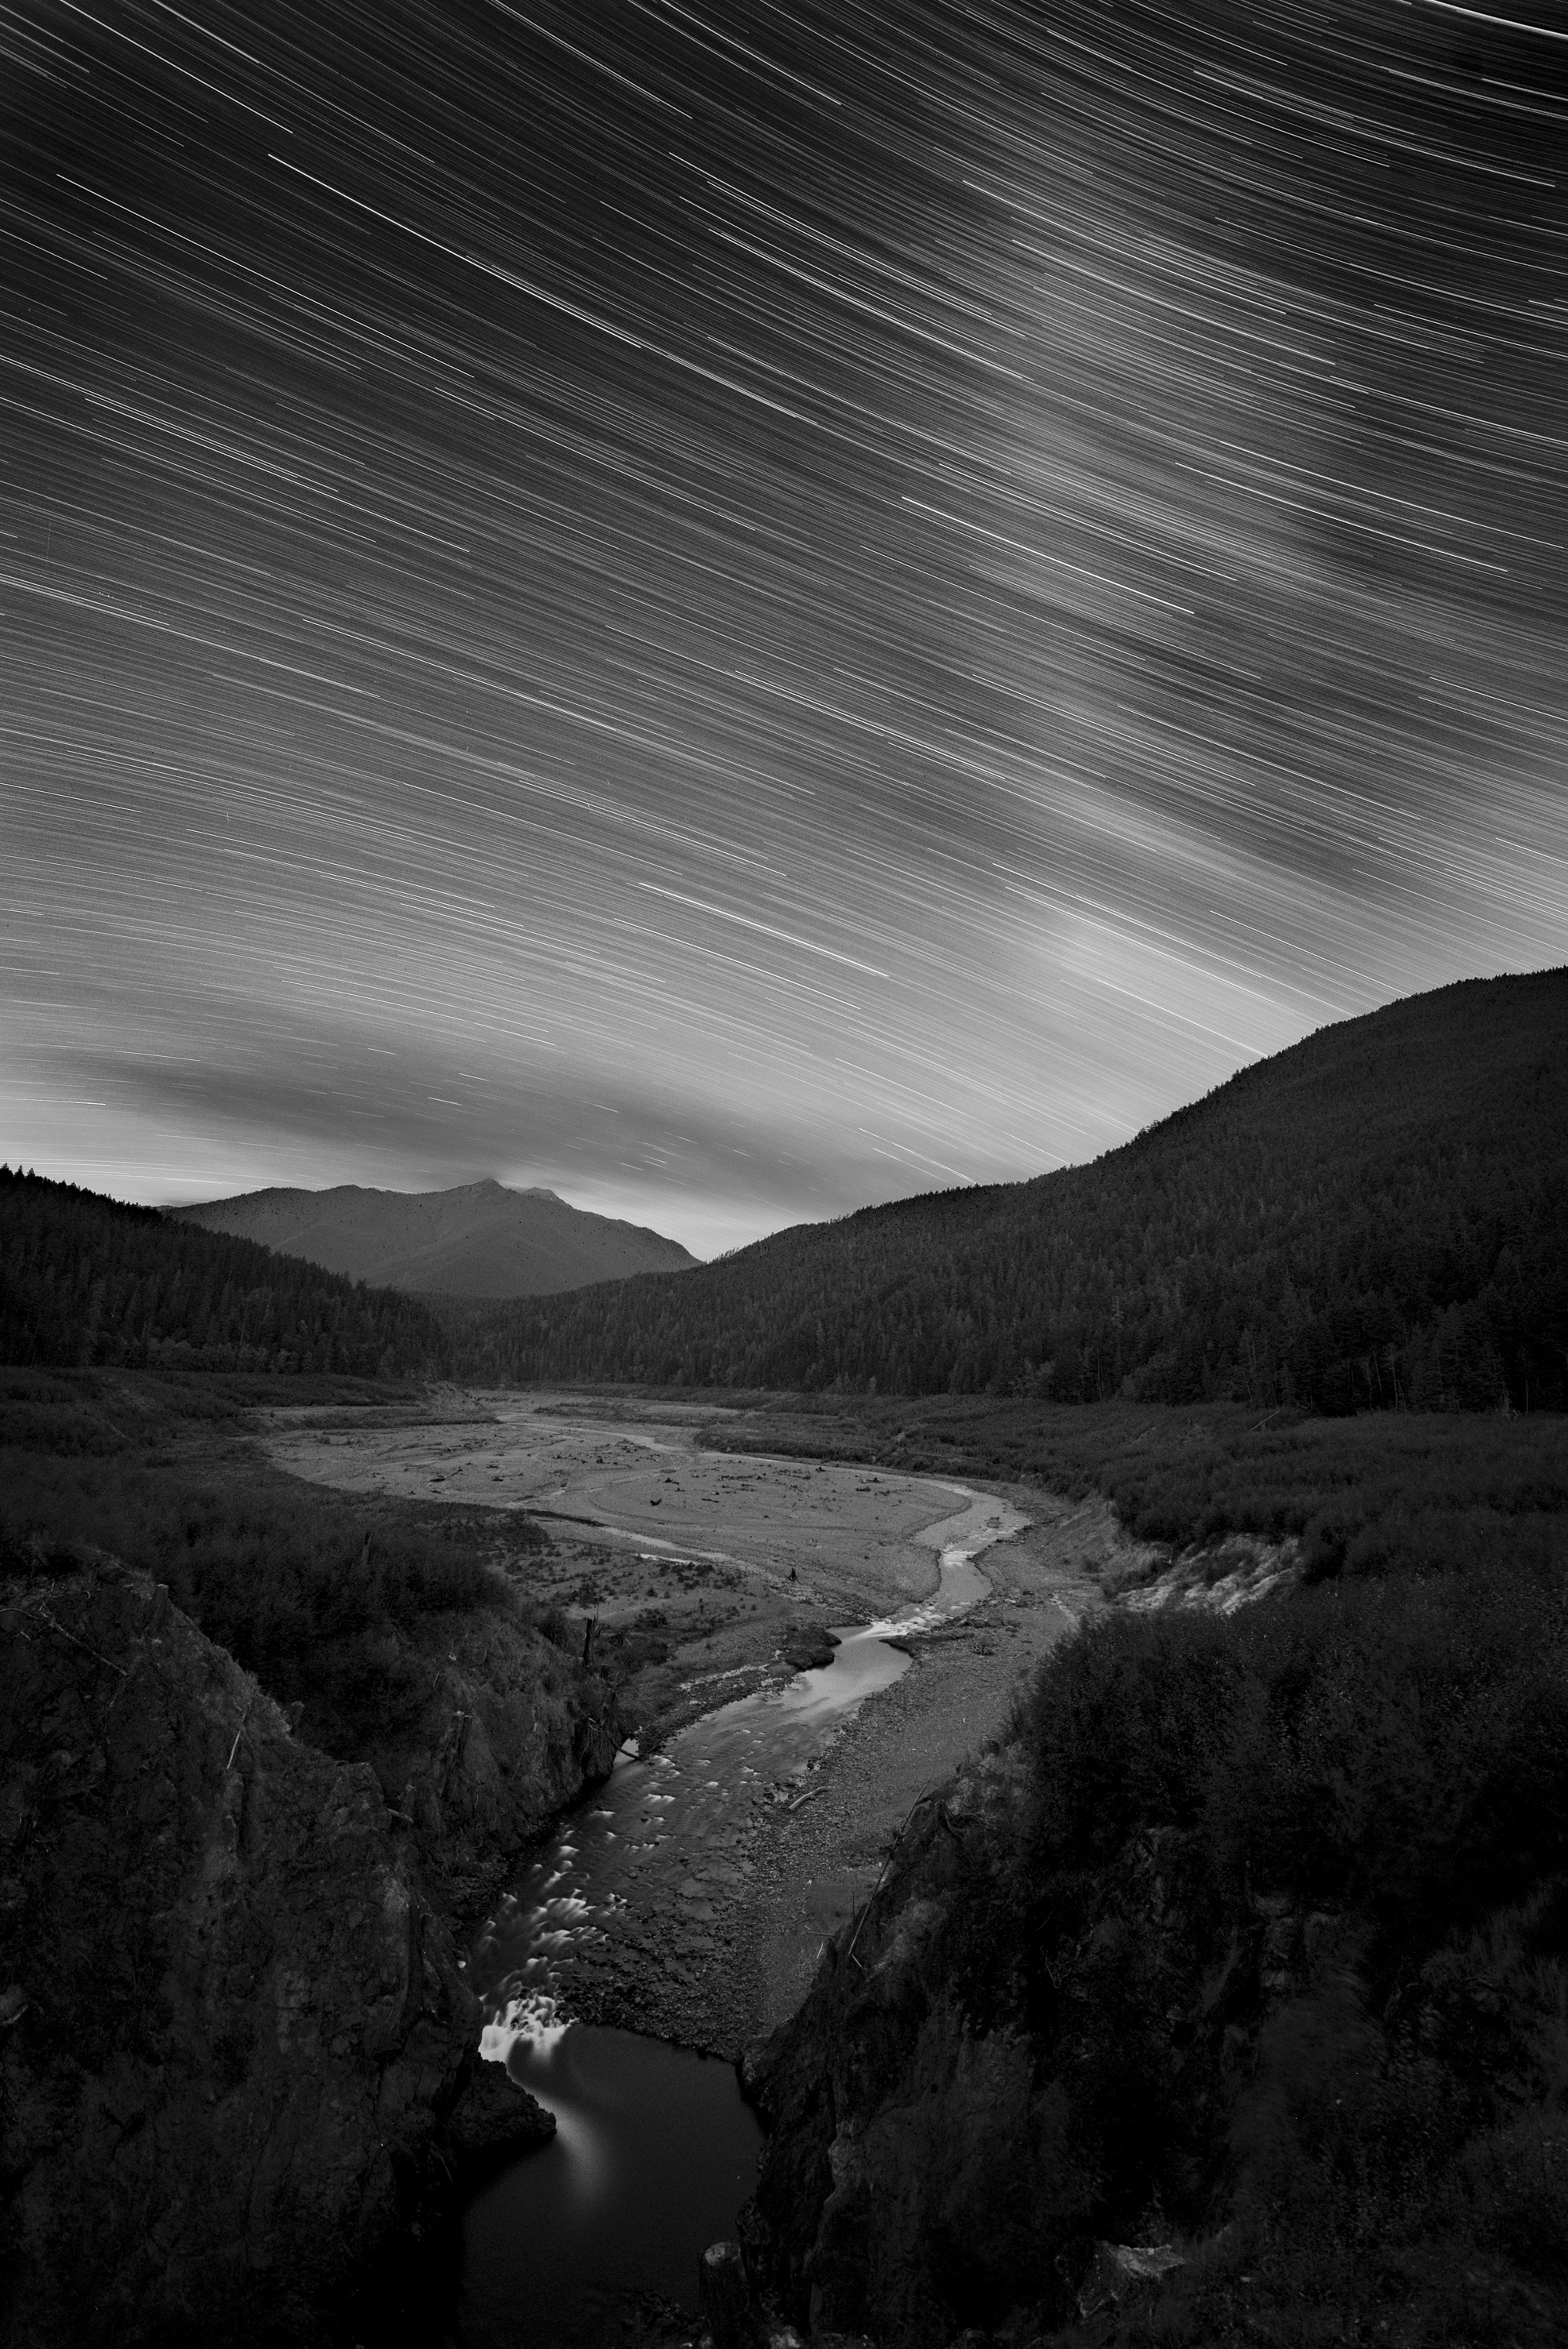 Elwha Valley, Olympic National Park. Nikon D750, Zeiss Distagon 15mm Zeiss Distagon f/2.8 lens . 60 minutes, f/5.6, ISO 400, plus LENR.